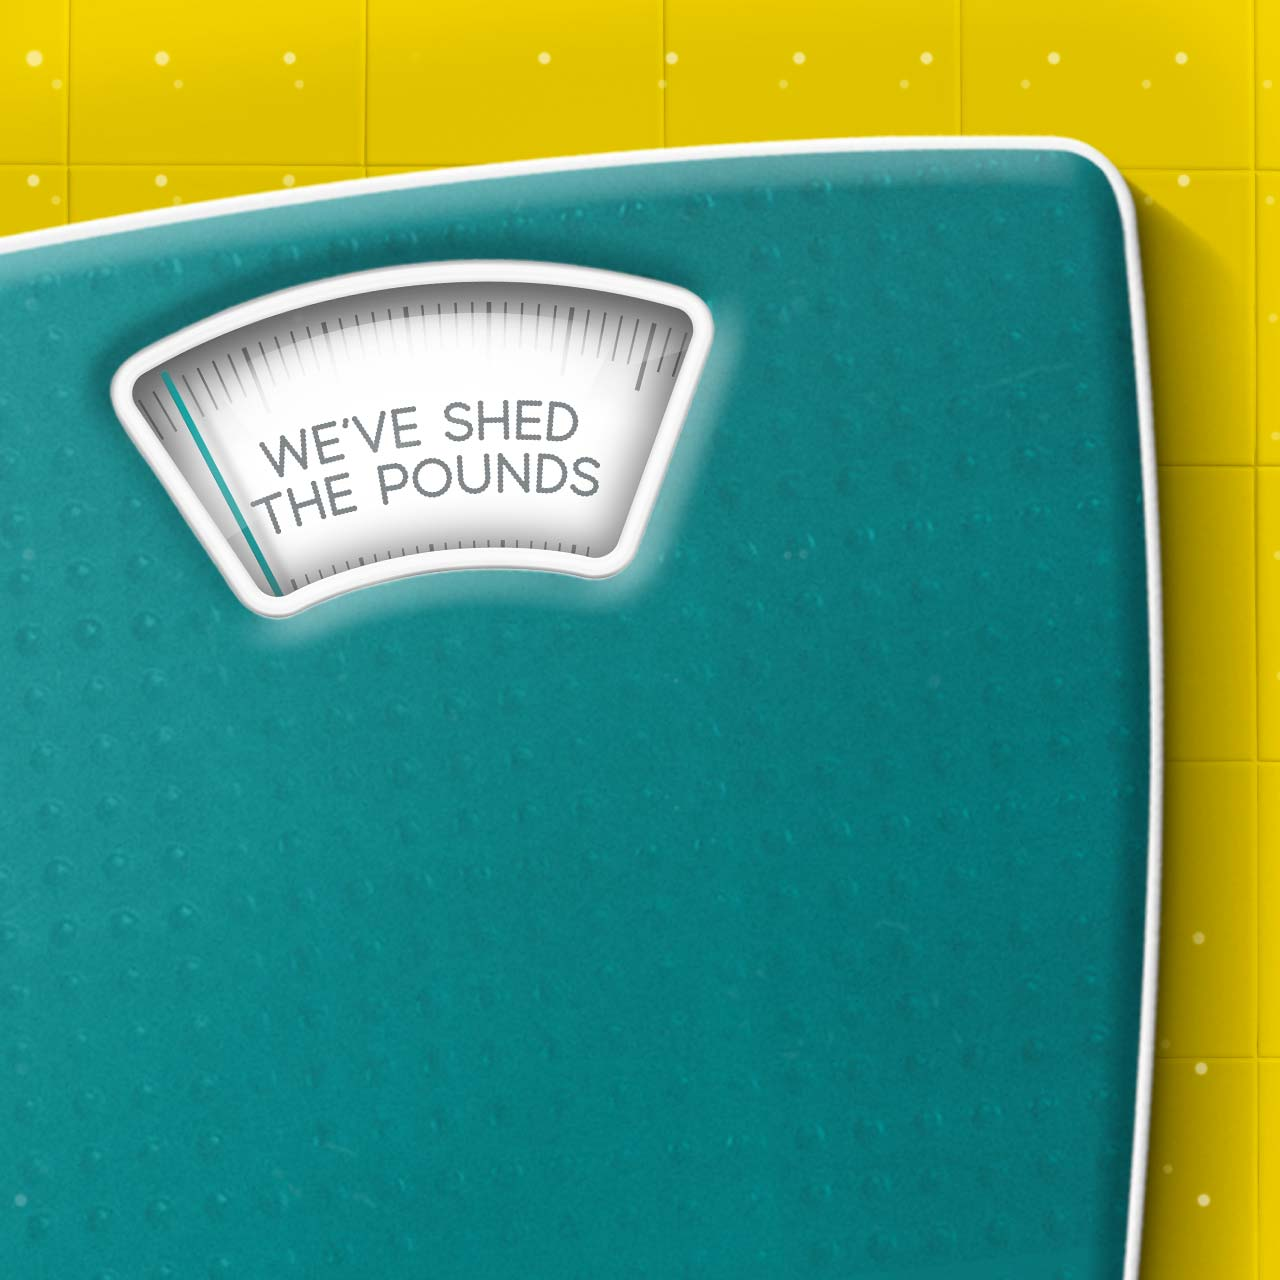 Superfast 4g Phones Tablets Fibre Broadband And More Ee